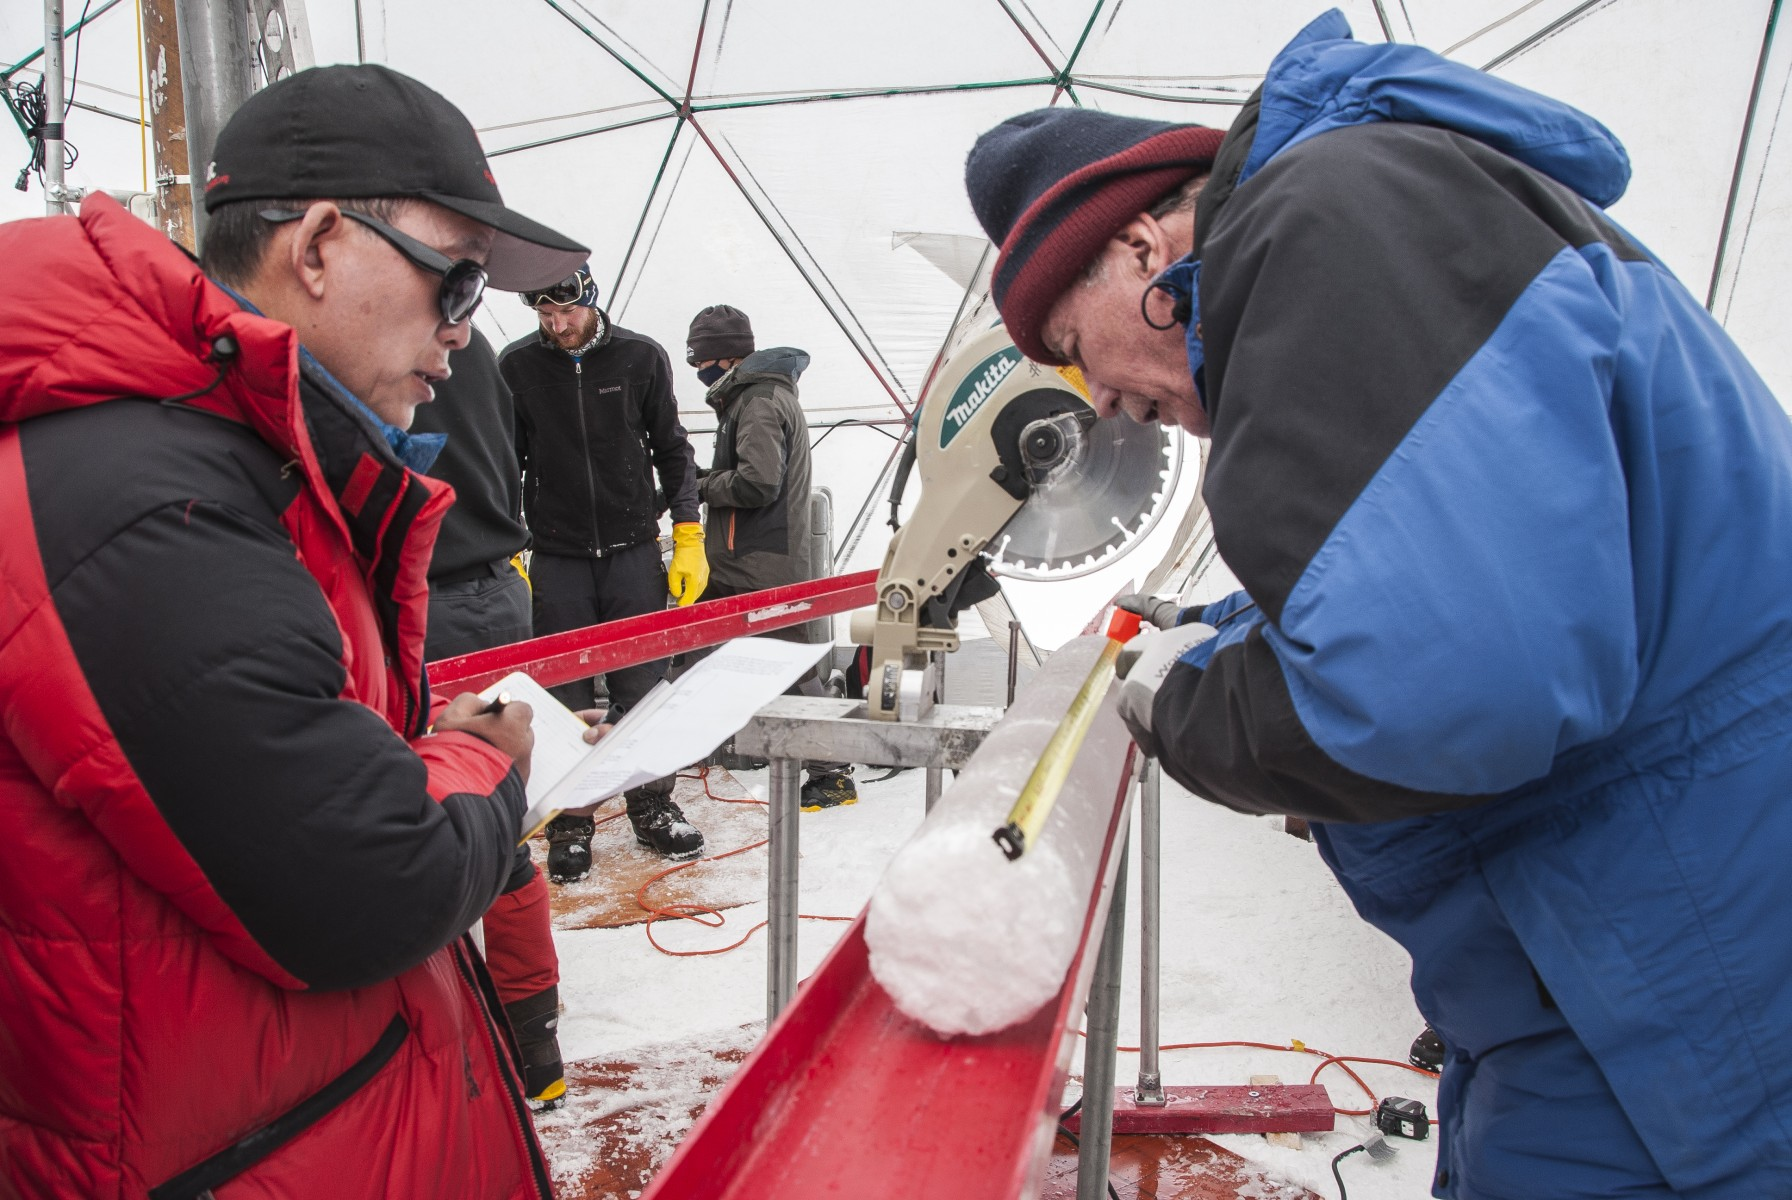 Scientists who study glacier ice have found viruses nearly 15,000 years old in two ice samples taken from the Tibetan Plateau in China. Most of those